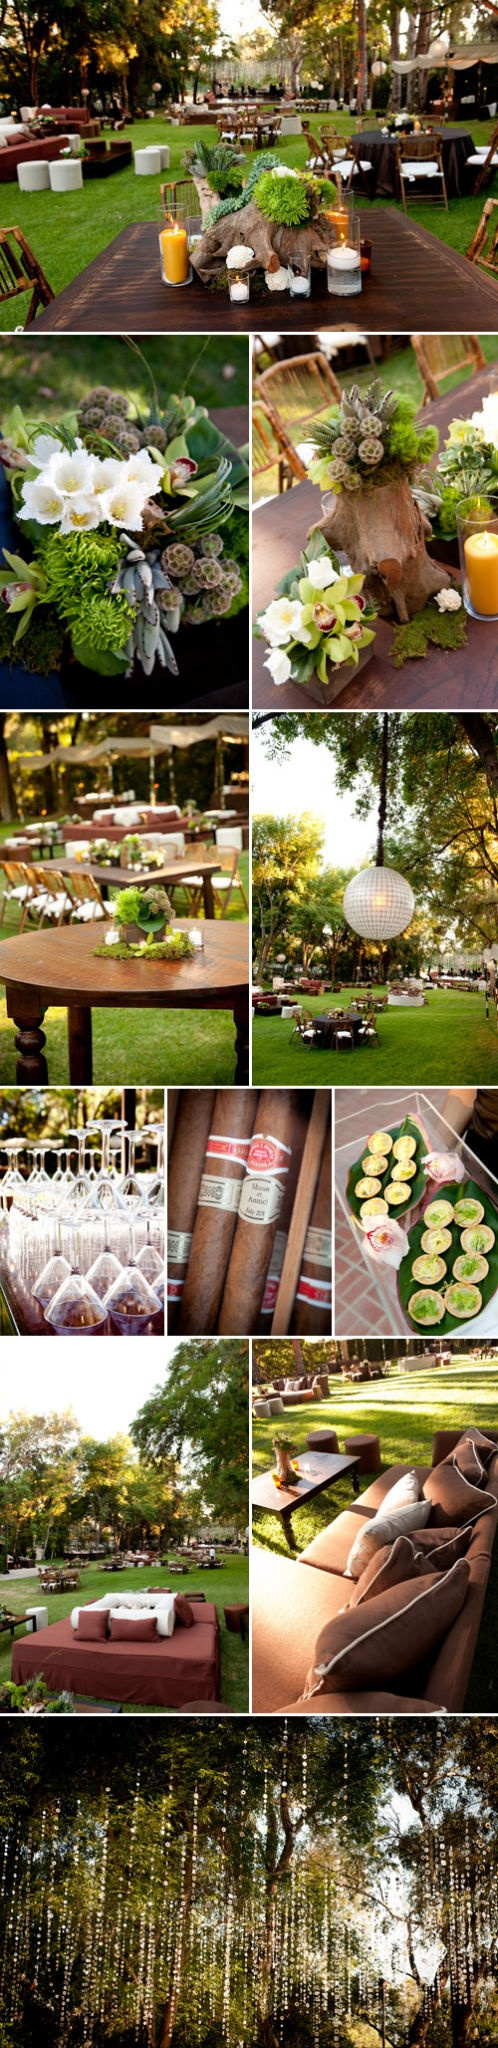 Garden Wedding.  The cigars are what caught my eye. :) We want a cigar bar.